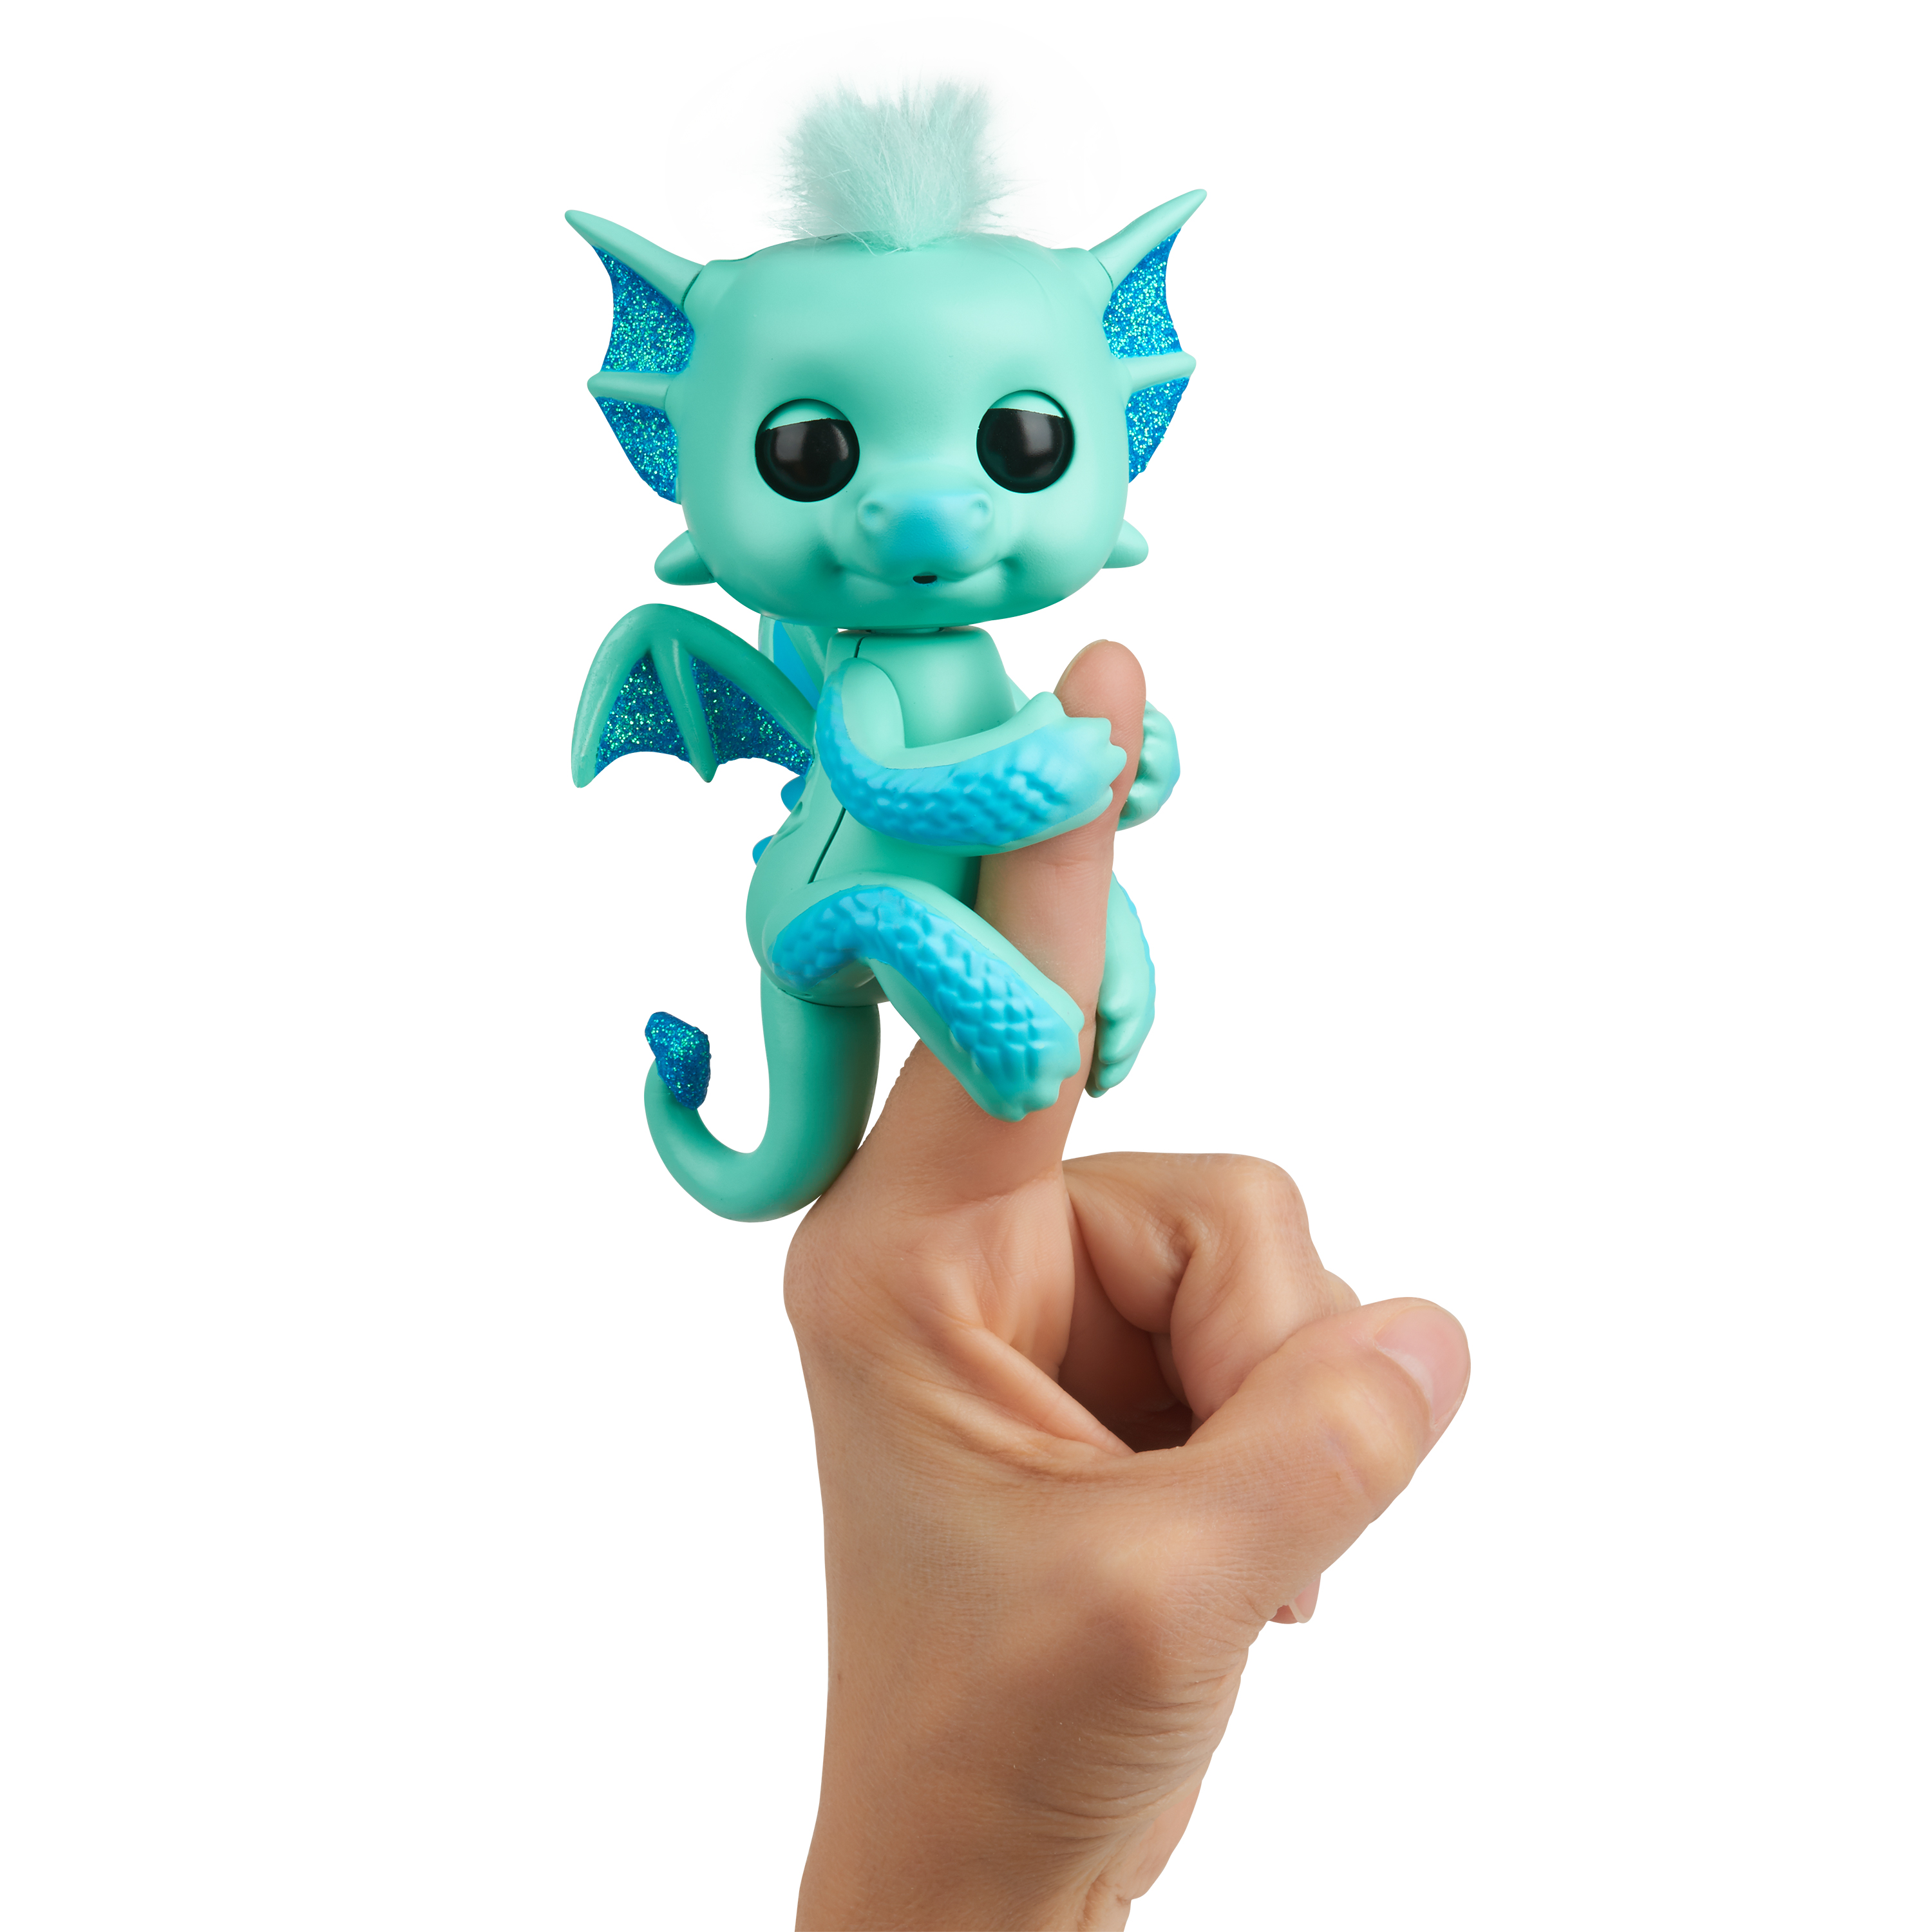 Fingerlings - Interactive Baby Dragon - Noa (Green with Blue) By WowWee